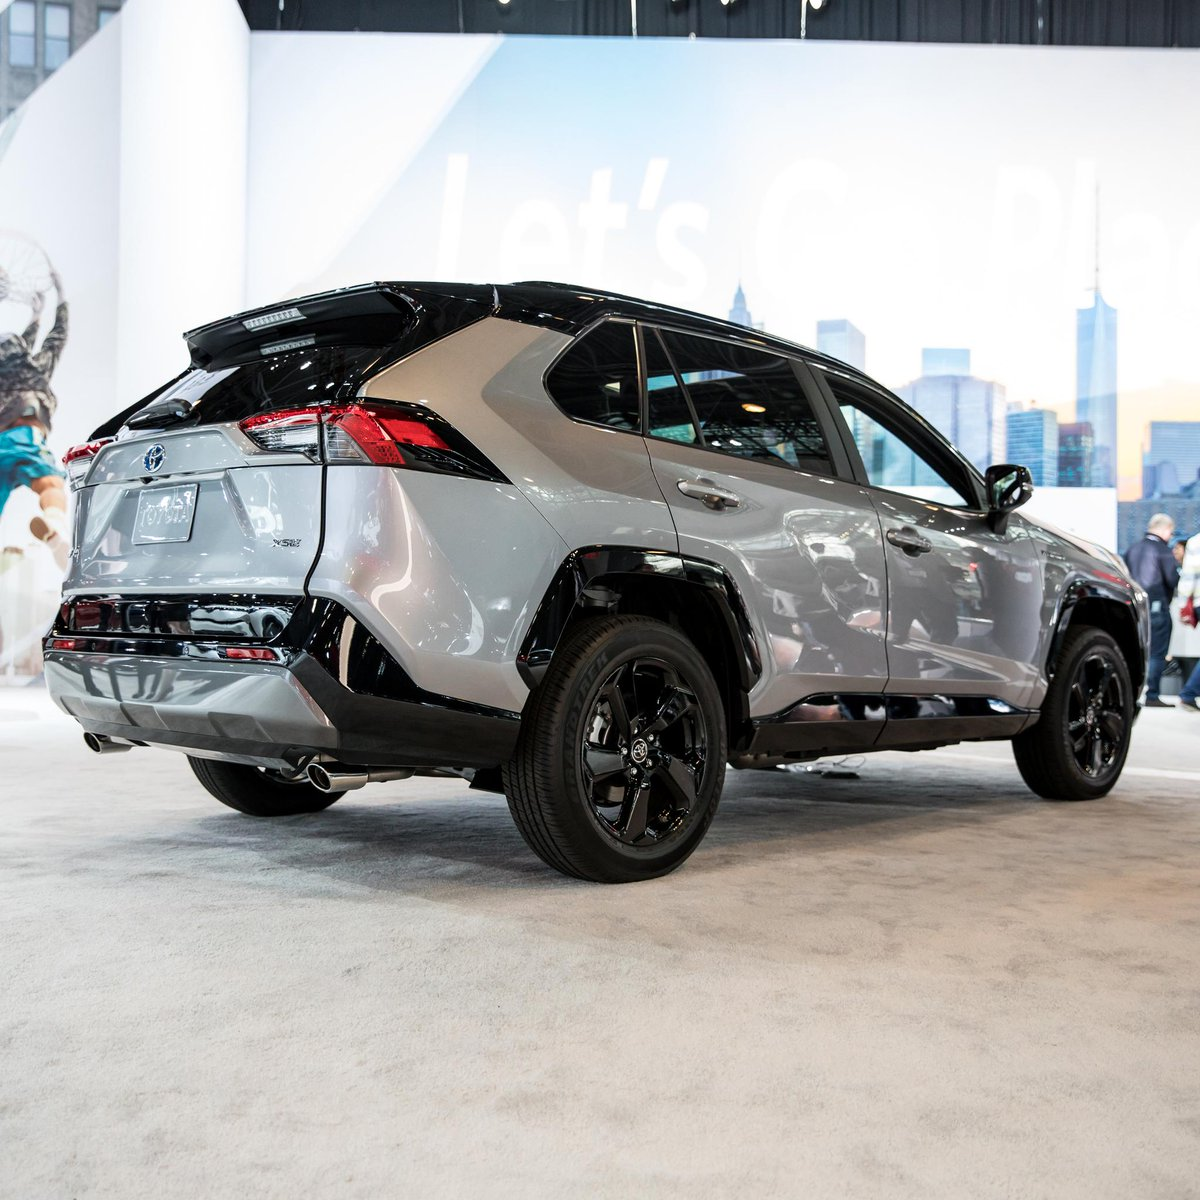 The All New 2019 Rav4 Xse Hv Has Arrived With Piano Black Accents Across Front Grille And Wheels Projector Beam Led Headlamps A 2 5 Liter